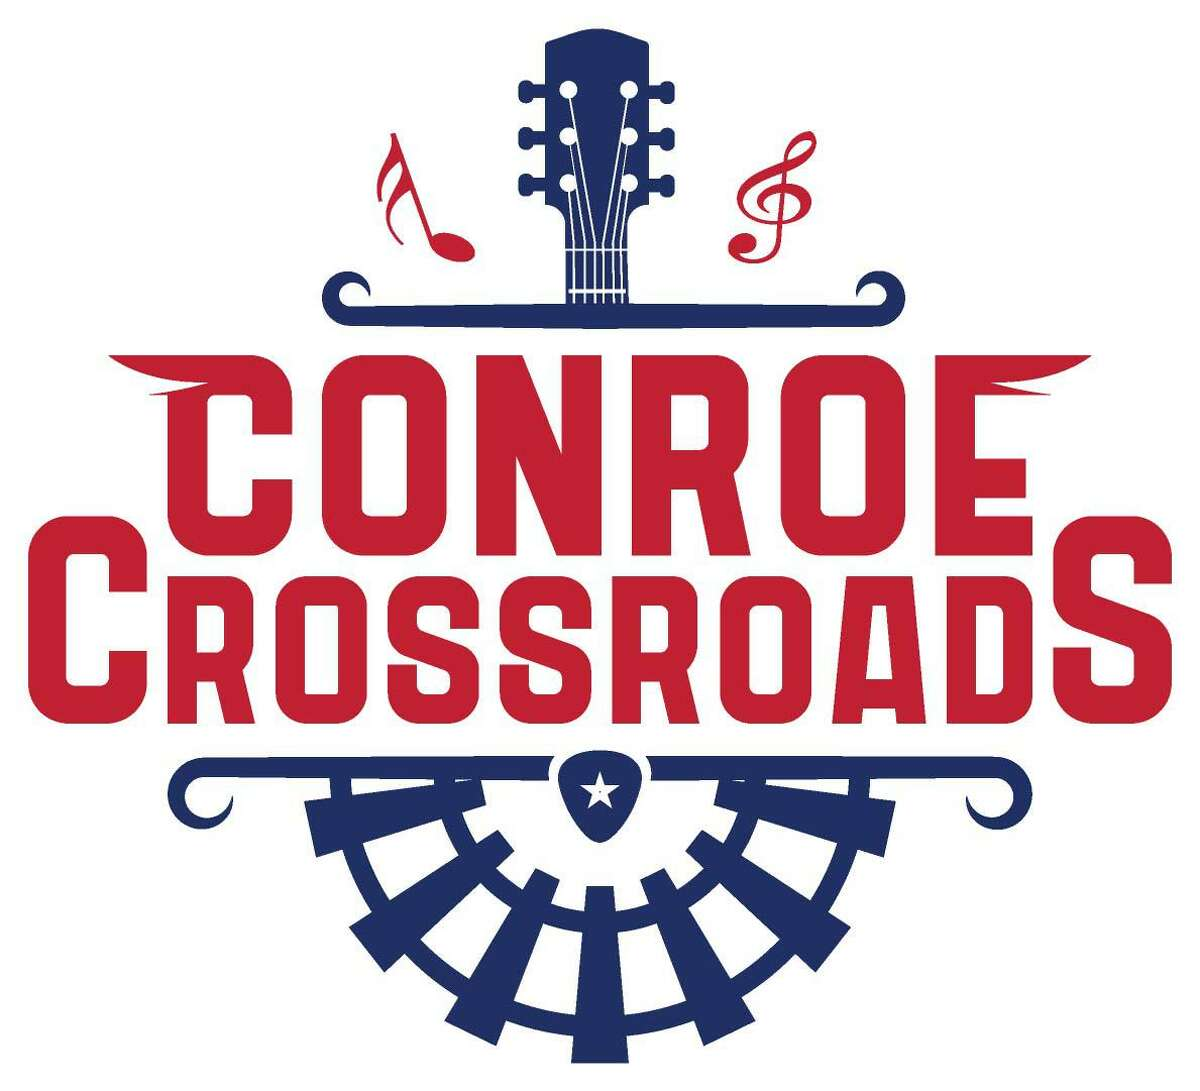 The Conroe Crossroads Music Festival will fill downtown Conroe with tunes April 7-10, 2022.